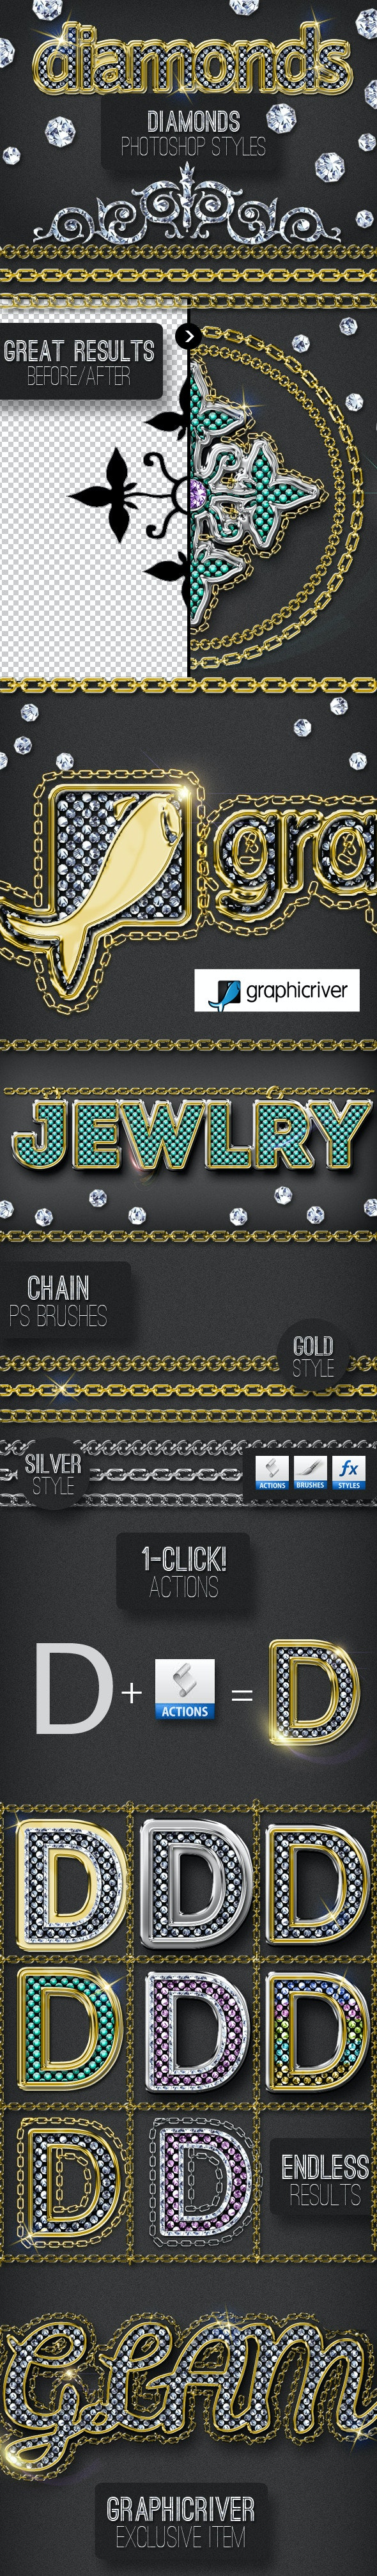 Bling Bling Diamond Photoshop Style Creator - Utilities Actions